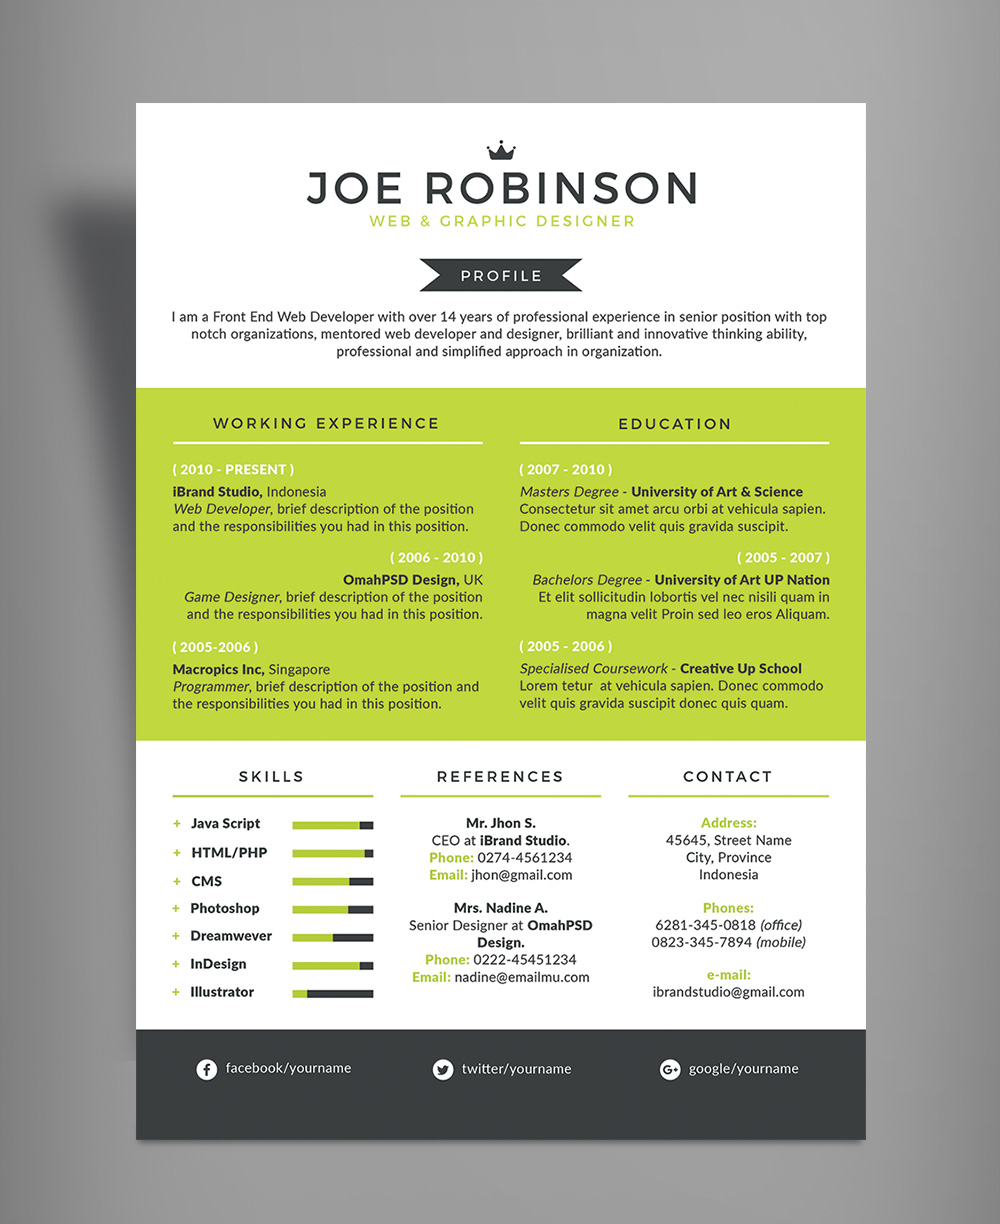 elegant professional resume cv design template in  elegant professional resume cv design template in 3 different colors psd file